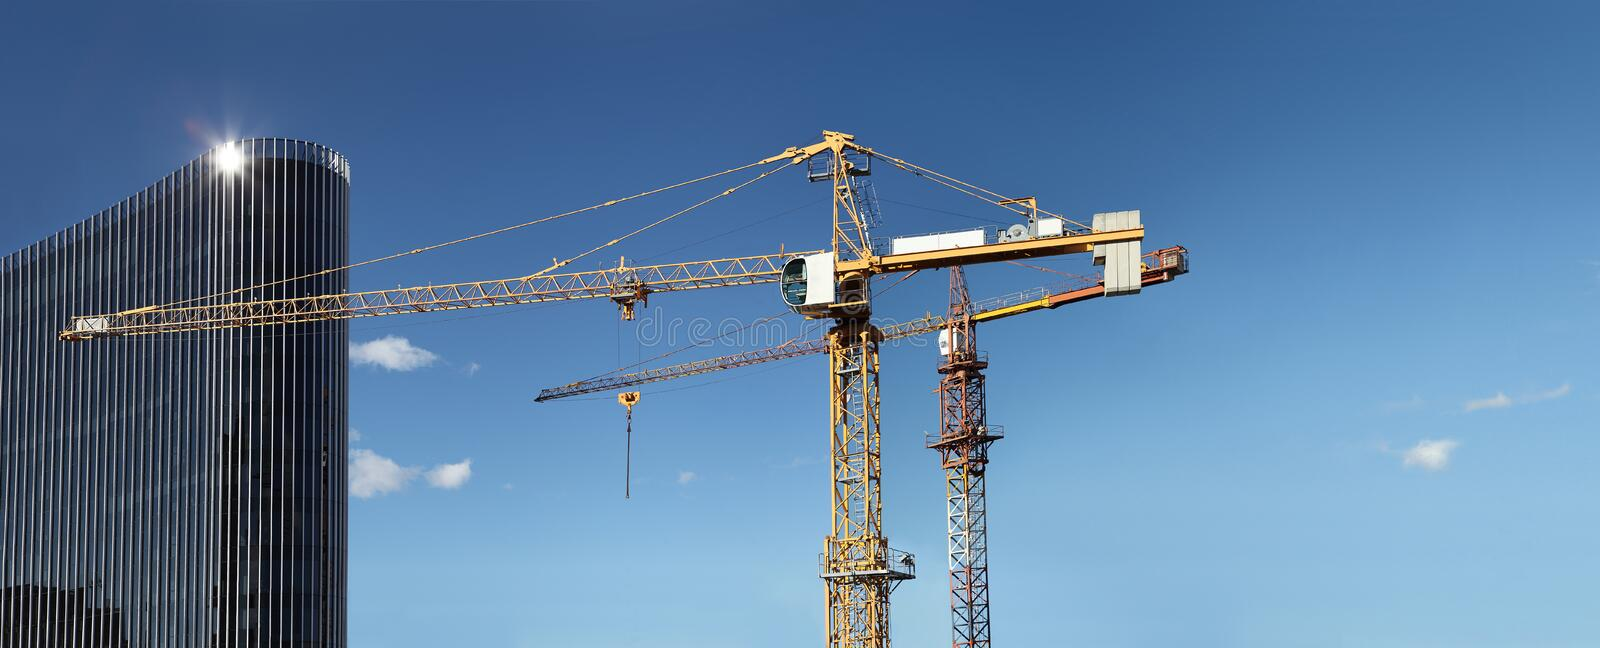 Under construction site building with crane and glass skyscraper royalty free stock photography